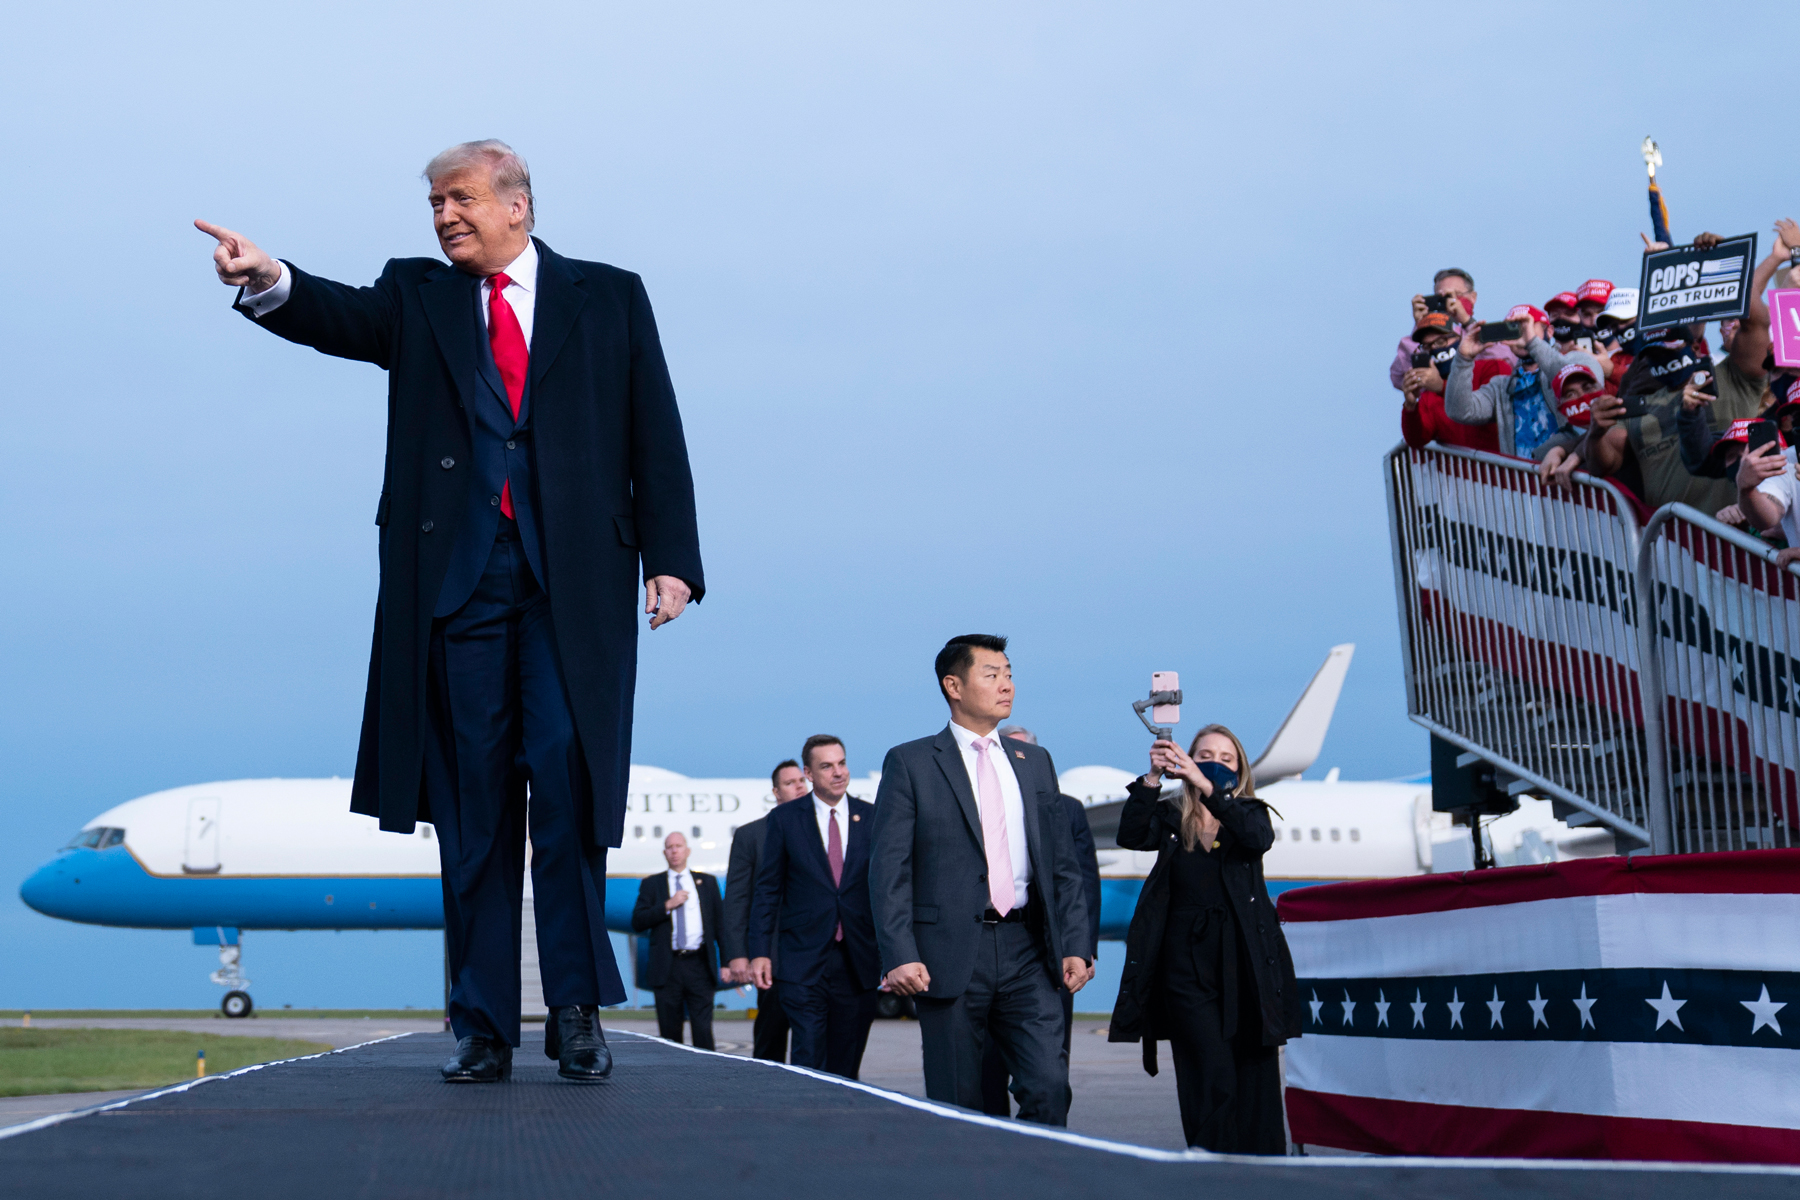 President Donald Trump arrives for a campaign rally at Fayetteville Regional Airport, Saturday, Sept. 19, 2020, in Fayetteville, N.C. (AP Photo/Evan Vucci)